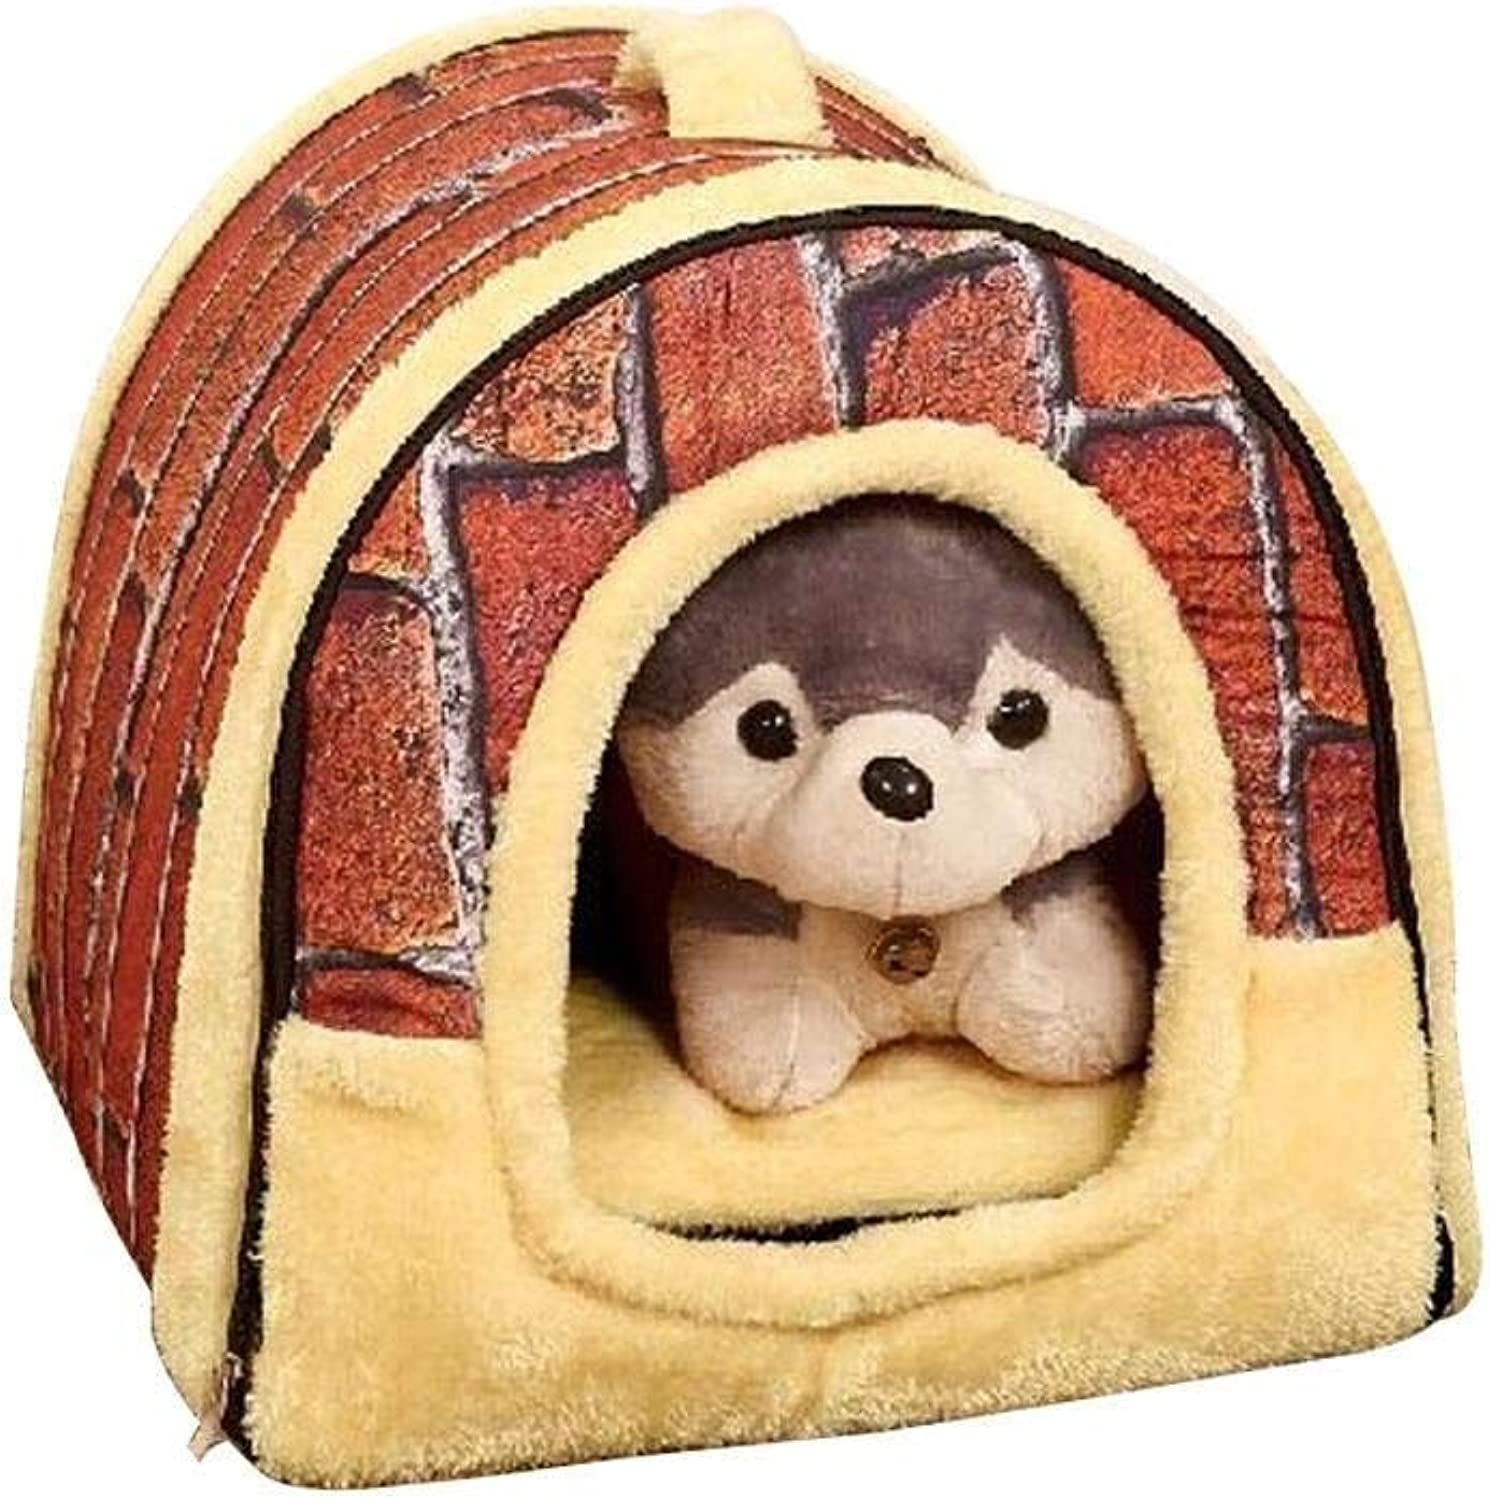 CHONGWFS Indoor Outdoor Pet Home Dog Beds Soft Warm Star Pattern 2 in 1 Pet House and Sofa,Dog Cat Bed Foldable Winter Soft Cozy Sleeping Bag Mat (color   A, Size   M)